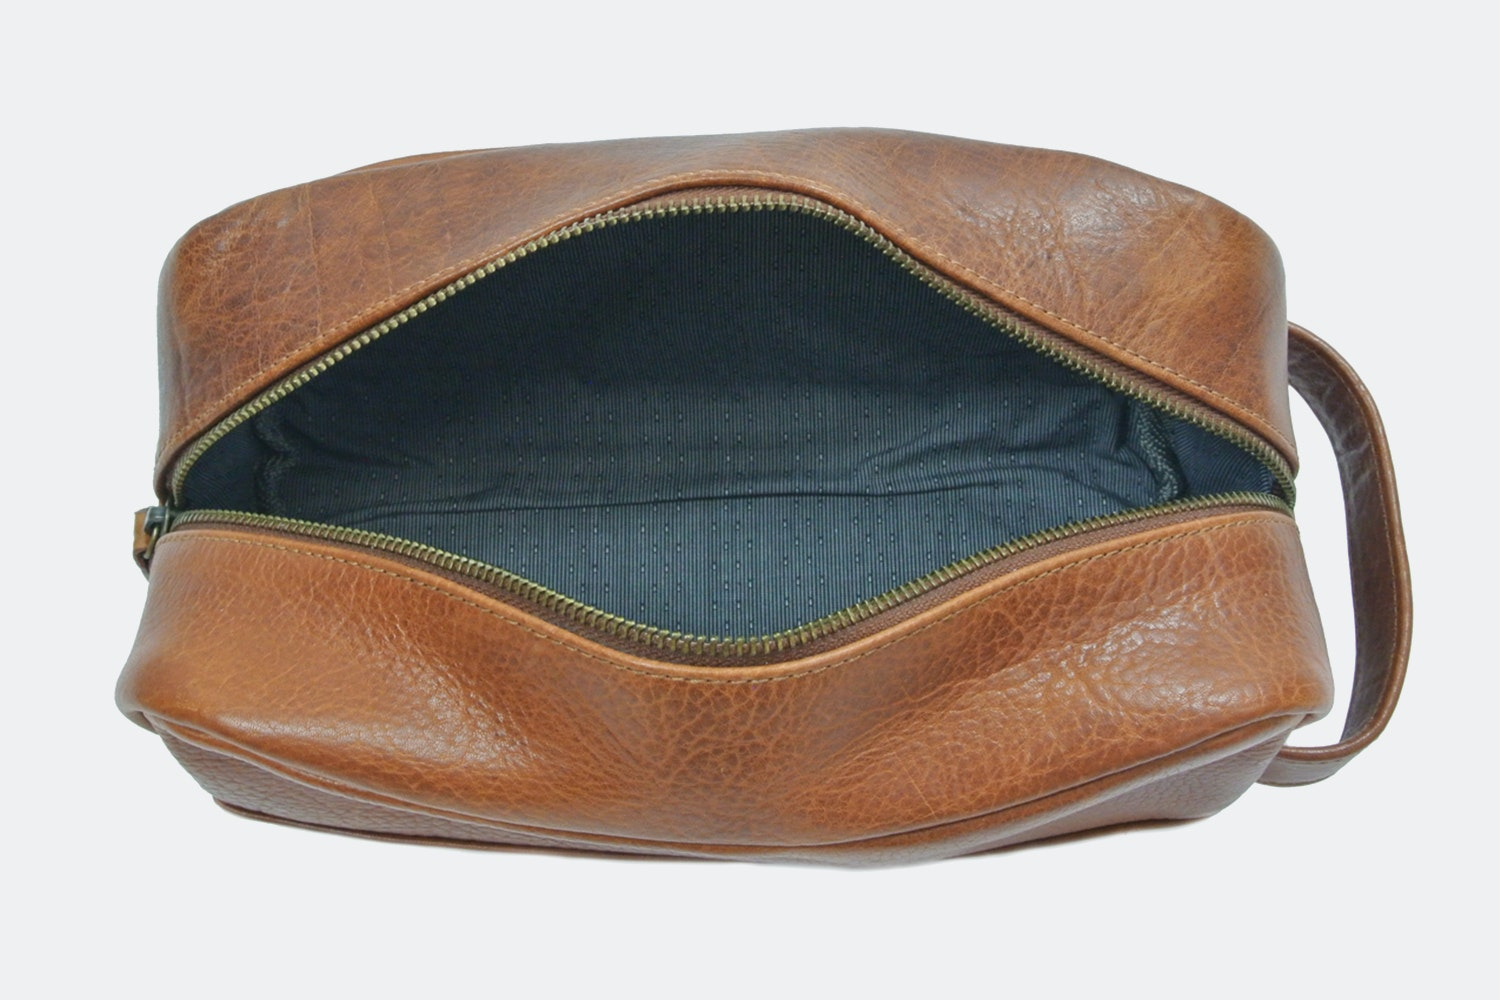 The British Belt Co. Whiteford Washbag